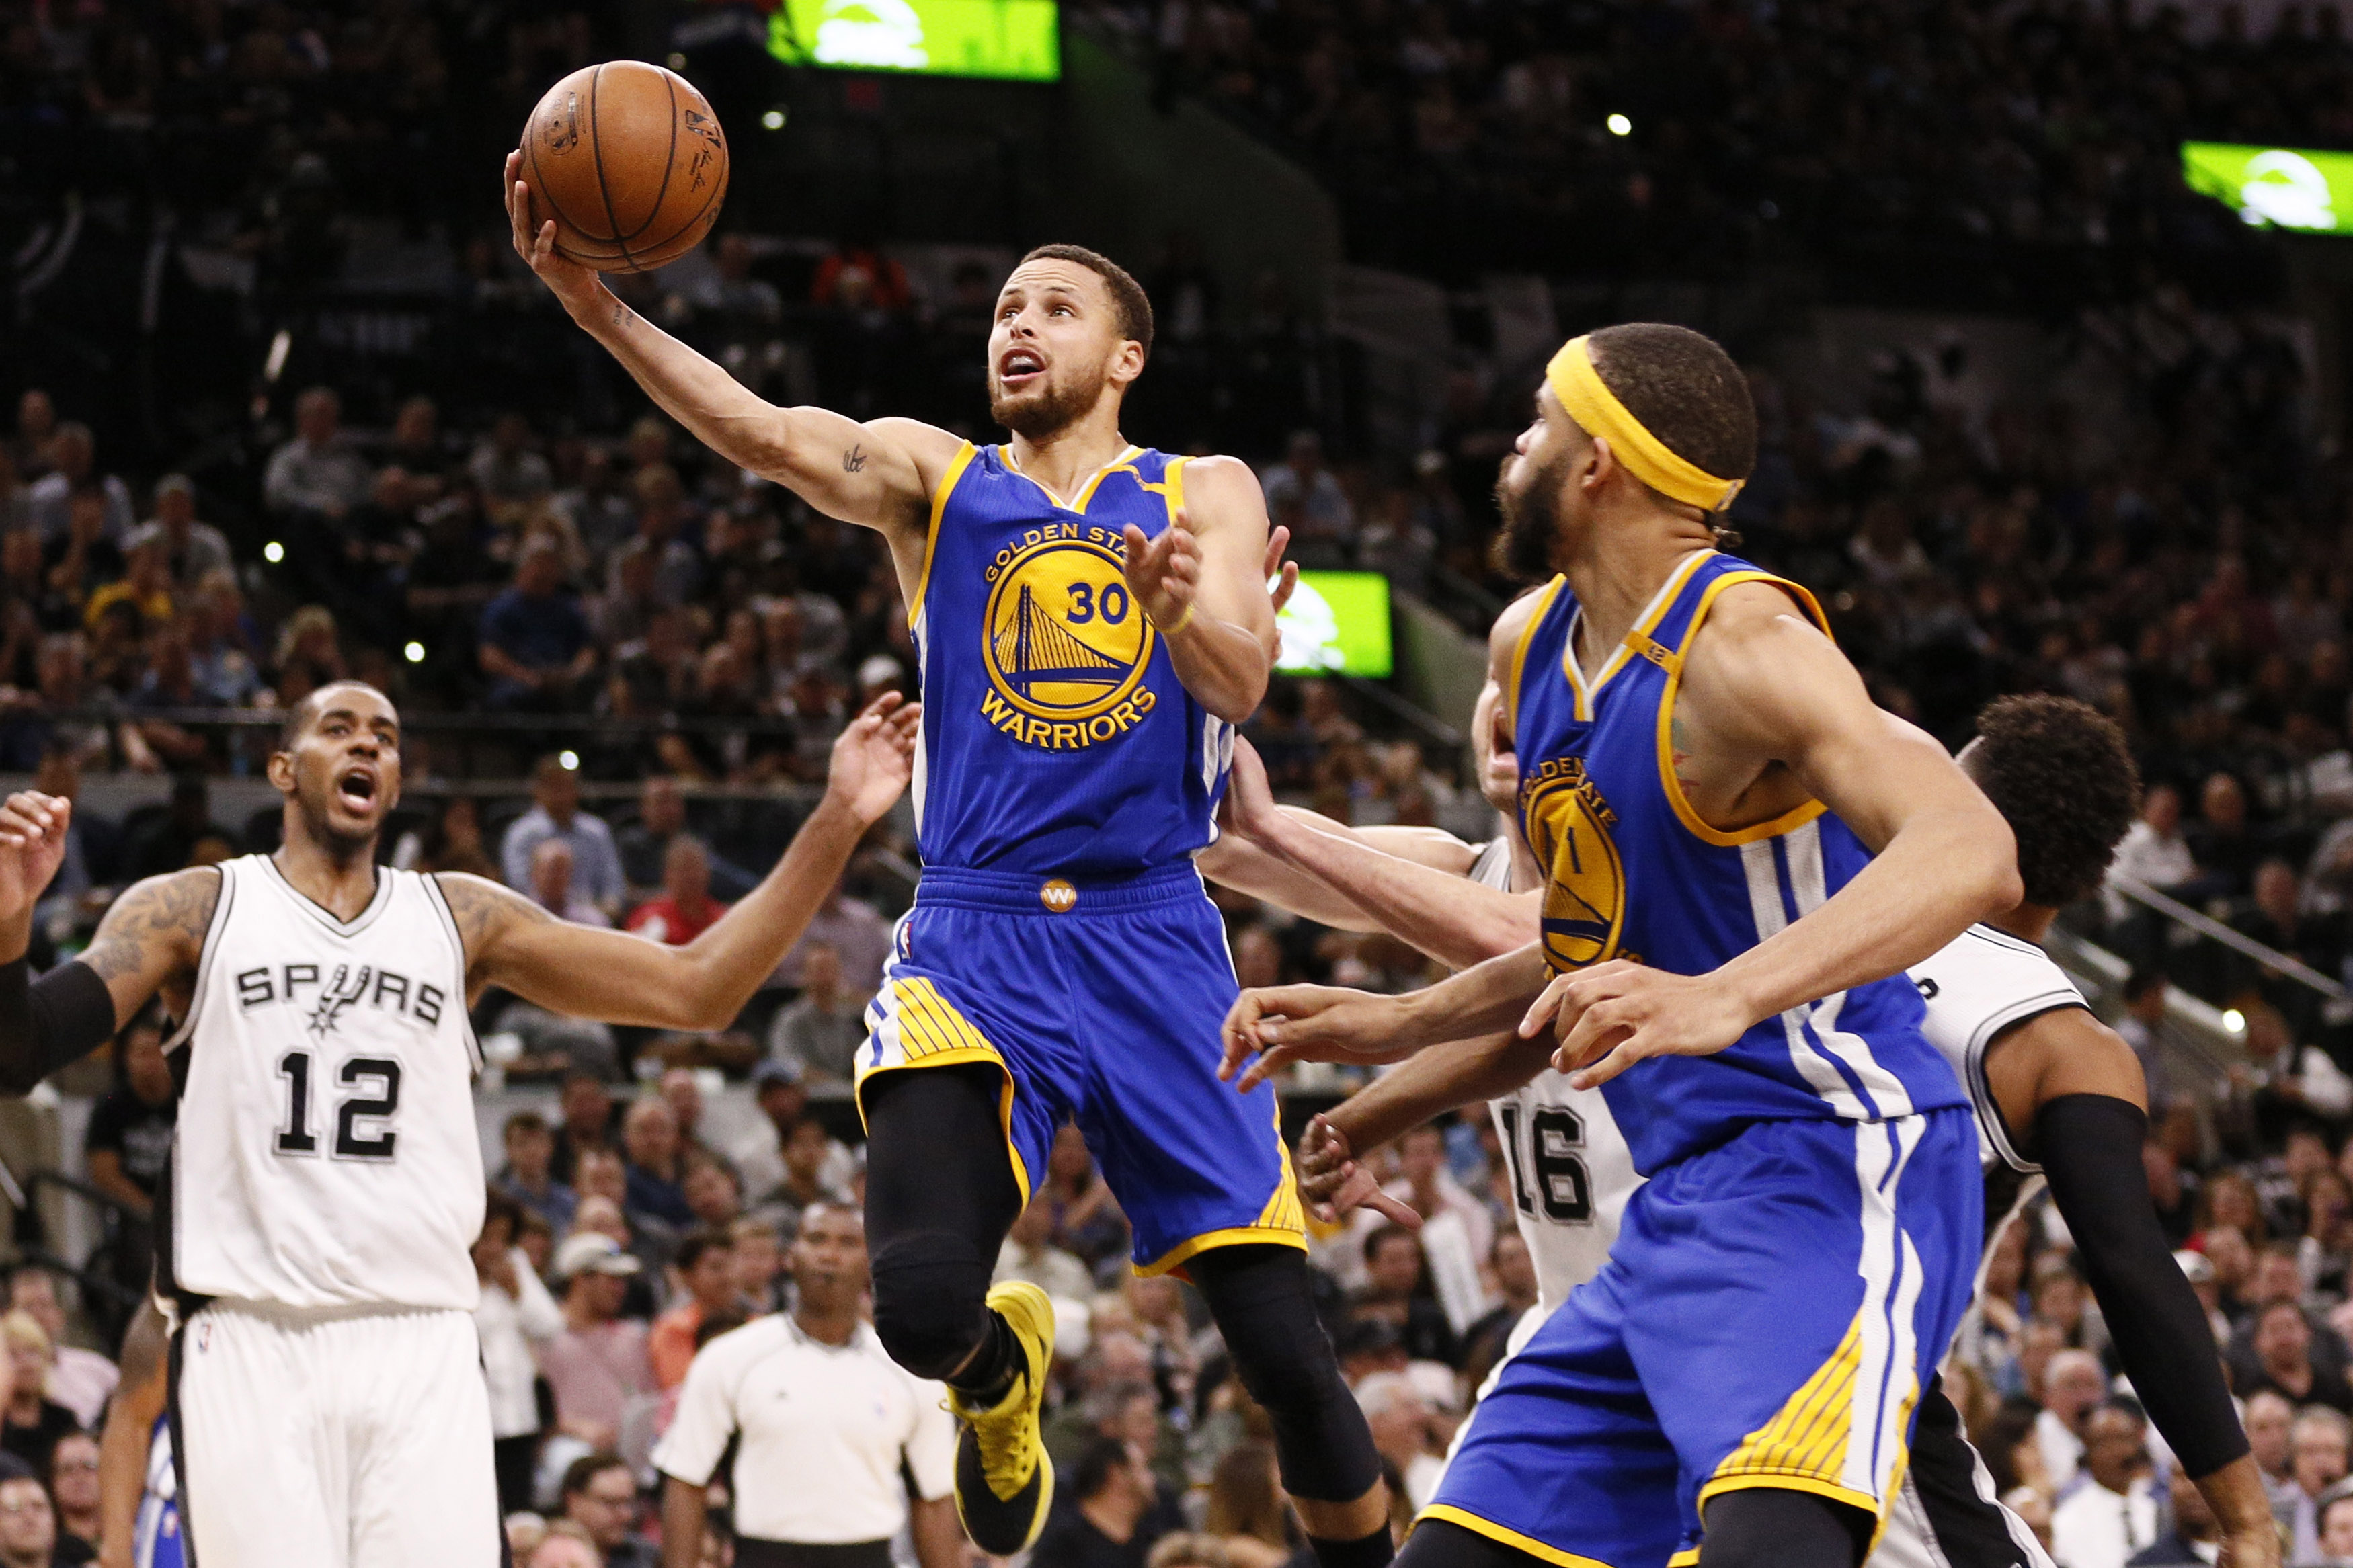 Mar 29, 2017; San Antonio, TX, USA; Golden State Warriors point guard Stephen Curry (30) drives to the basket as San Antonio Spurs power forward LaMarcus Aldridge (12) looks on during the second half at AT&T Center. Mandatory Credit: Soobum Im-USA TODAY Sports